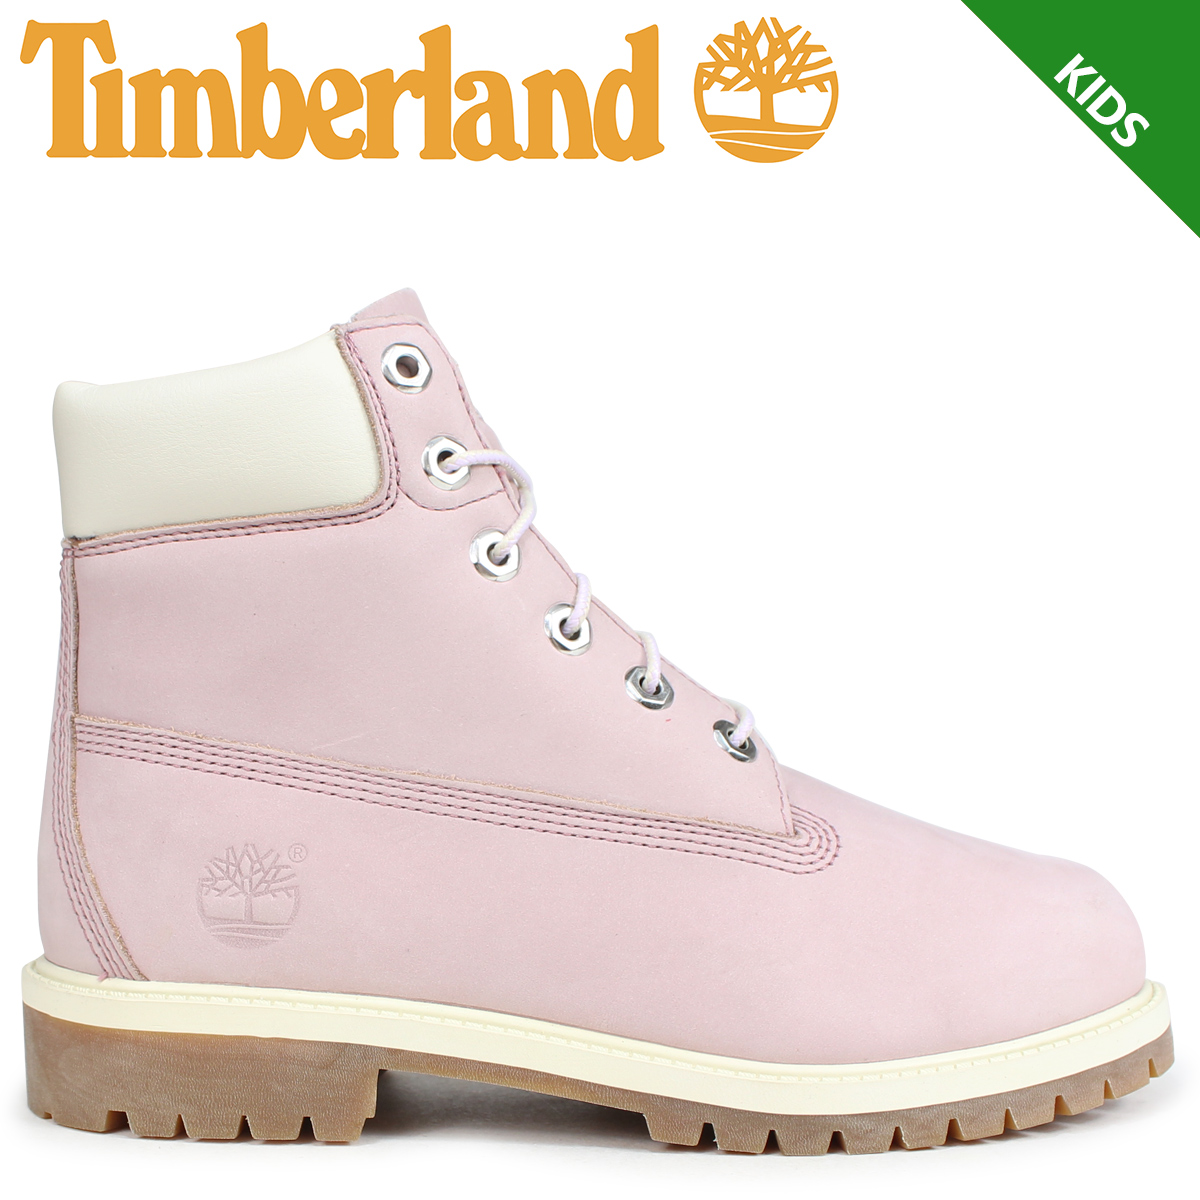 Timberland boots Lady's 6 inches Timberland kids JUNIOR 6 INCH PREMIUM WATERPROOF BOOTS 34,992W Wise pink [823 reentry load]